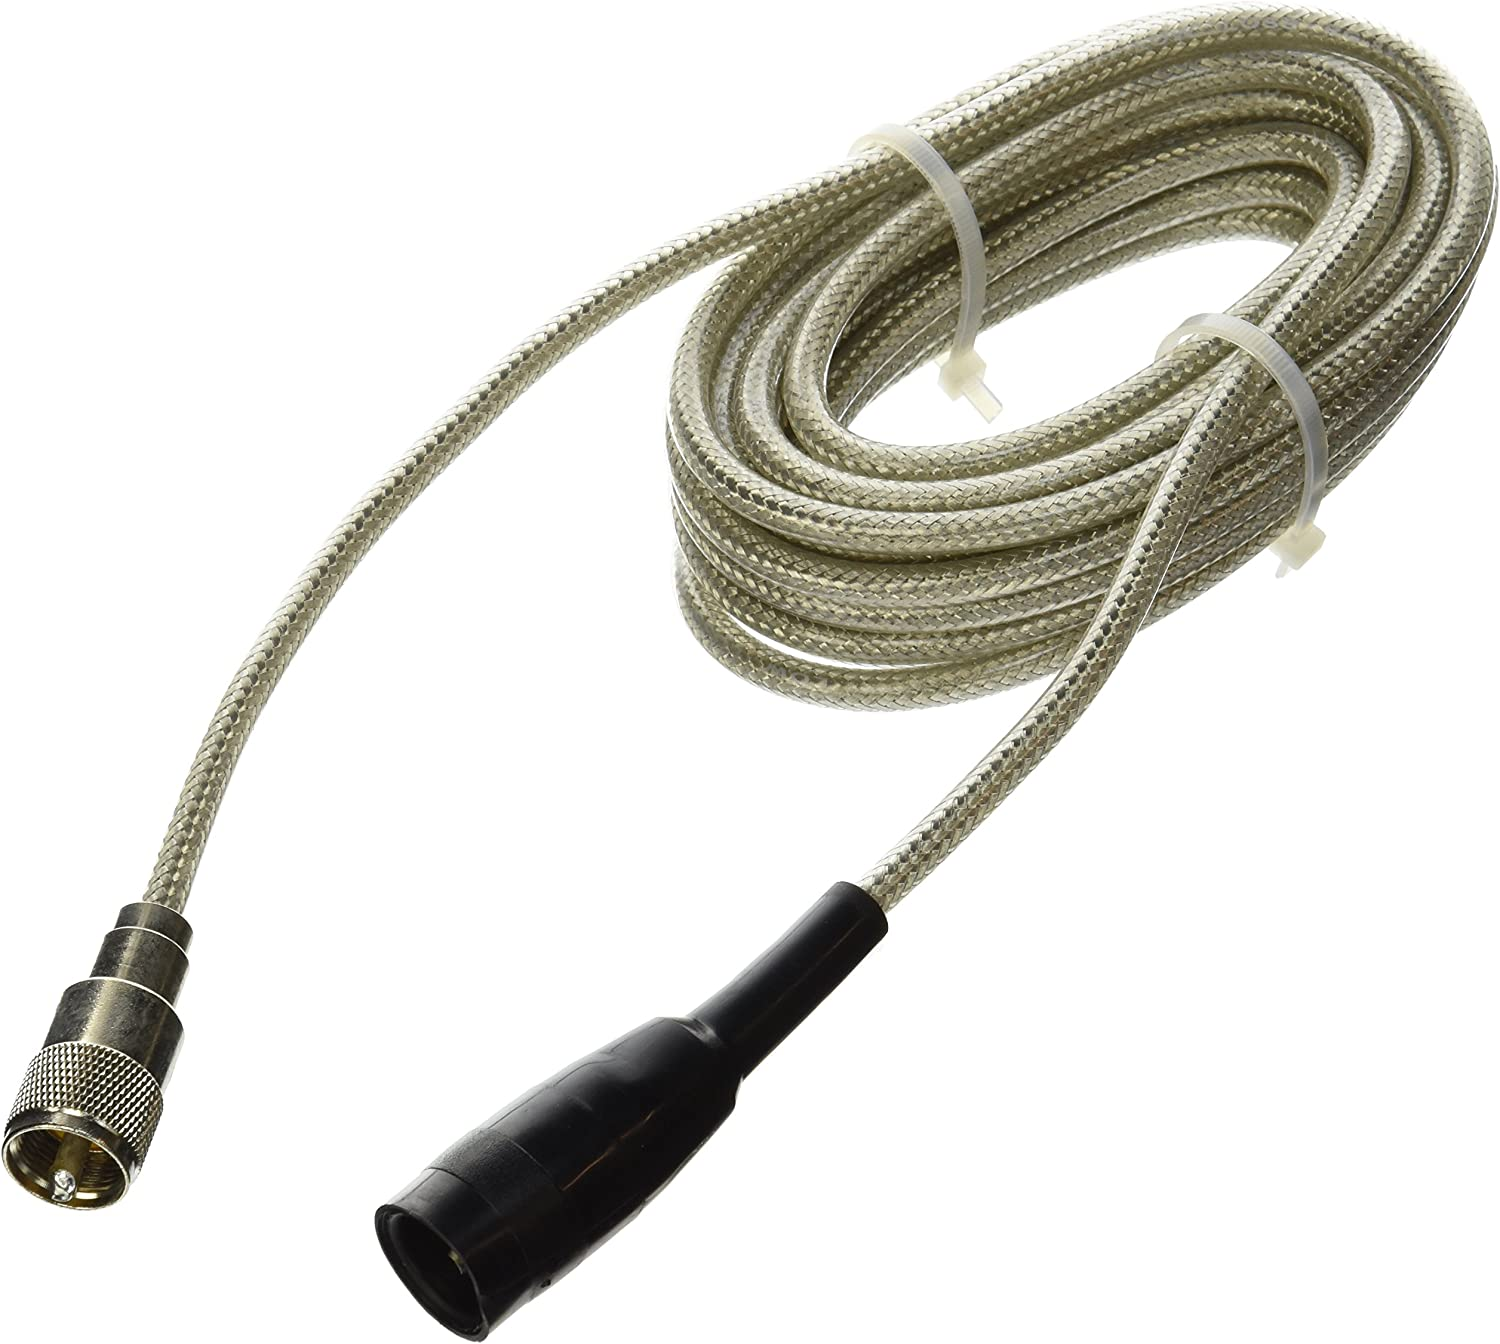 K40 K4018FME 18-Feet Super Mini-8 CB Antenna Cable with Removable FME Connector